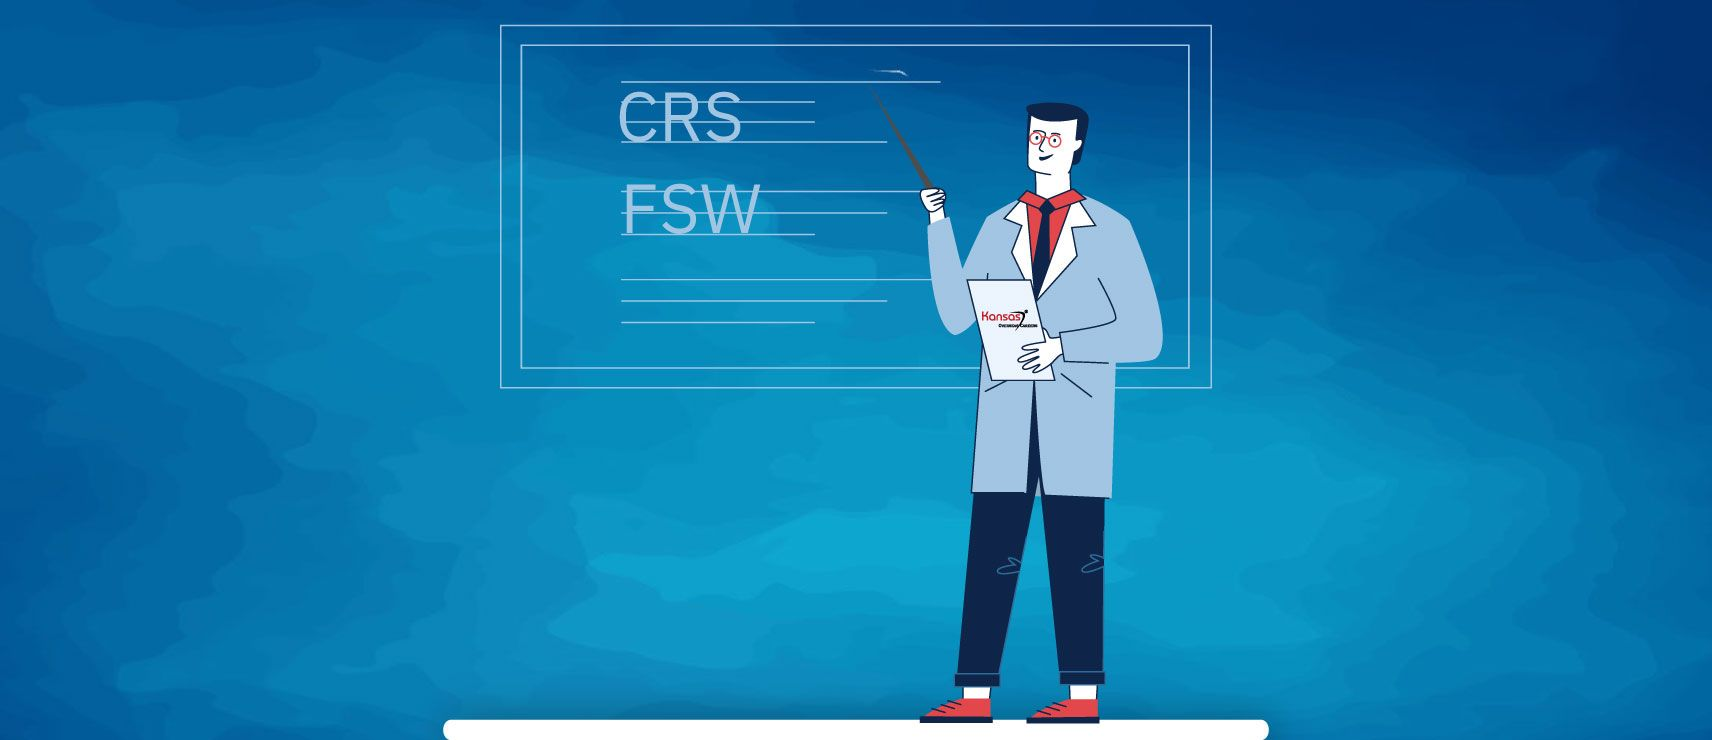 An illustration of Kansas immigration consultant explaining the differences between CRS points calculator and FSW (67 points) points calculator